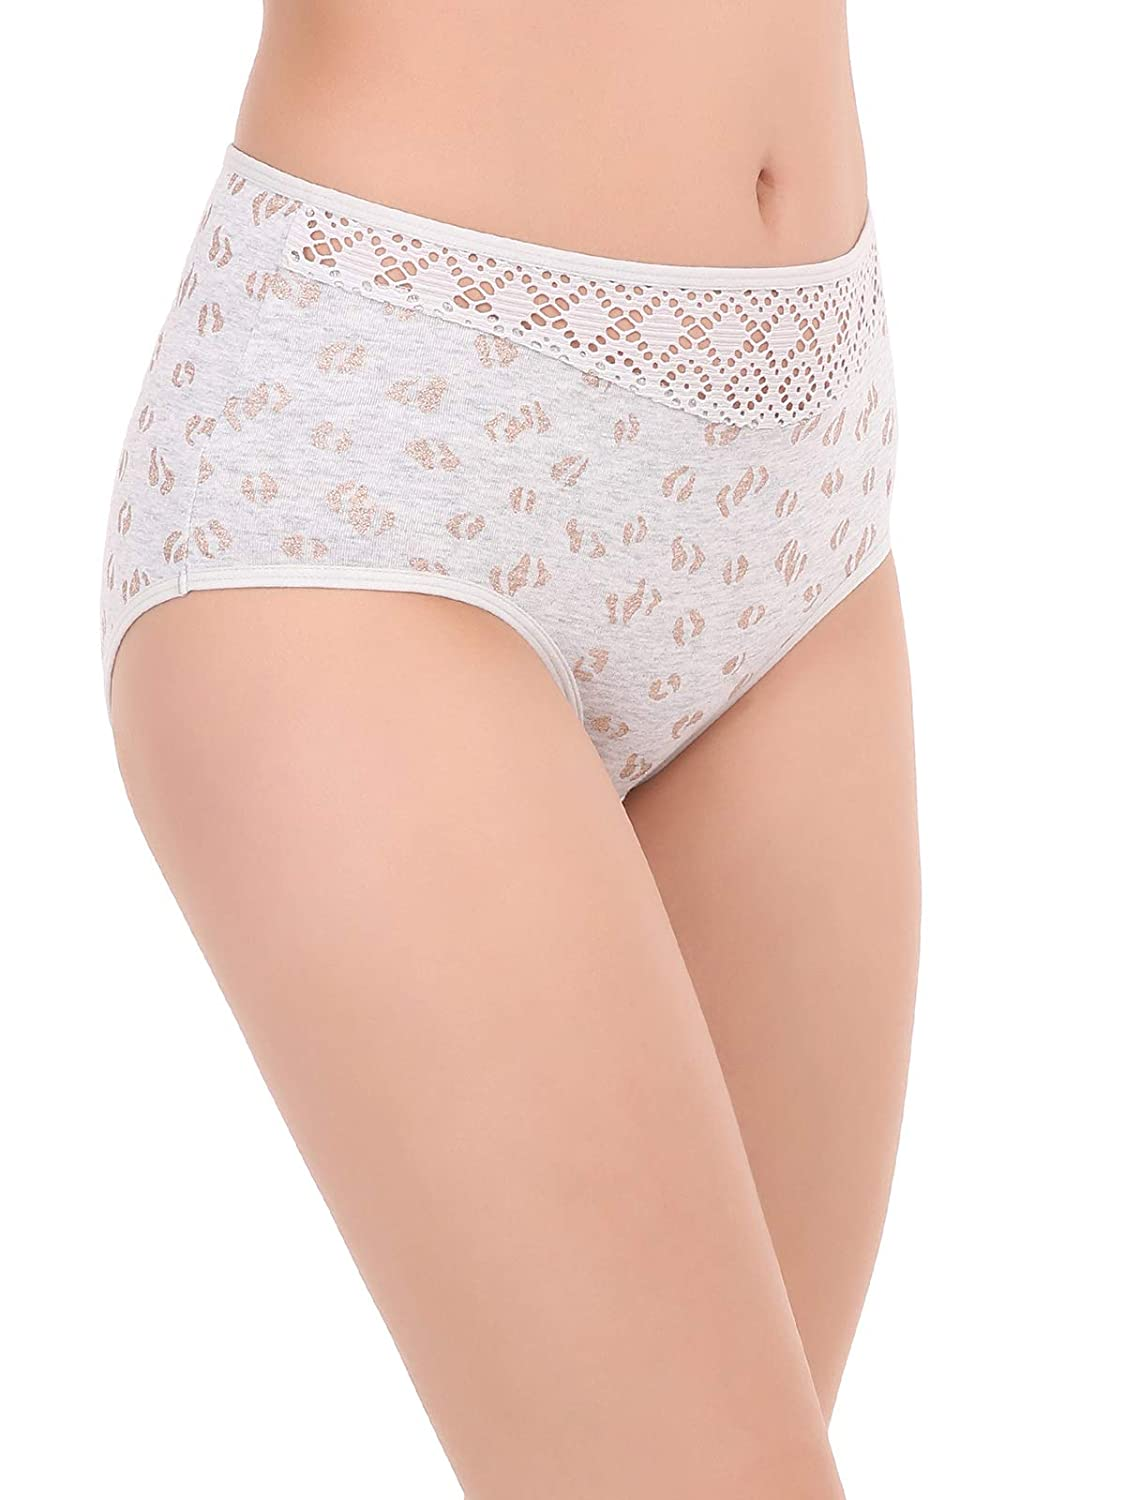 19e758f5890 Clovia Women s Cotton High Waist Shimmer Print Hipster Panty with Lace at  Waist  Amazon.in  Clothing   Accessories